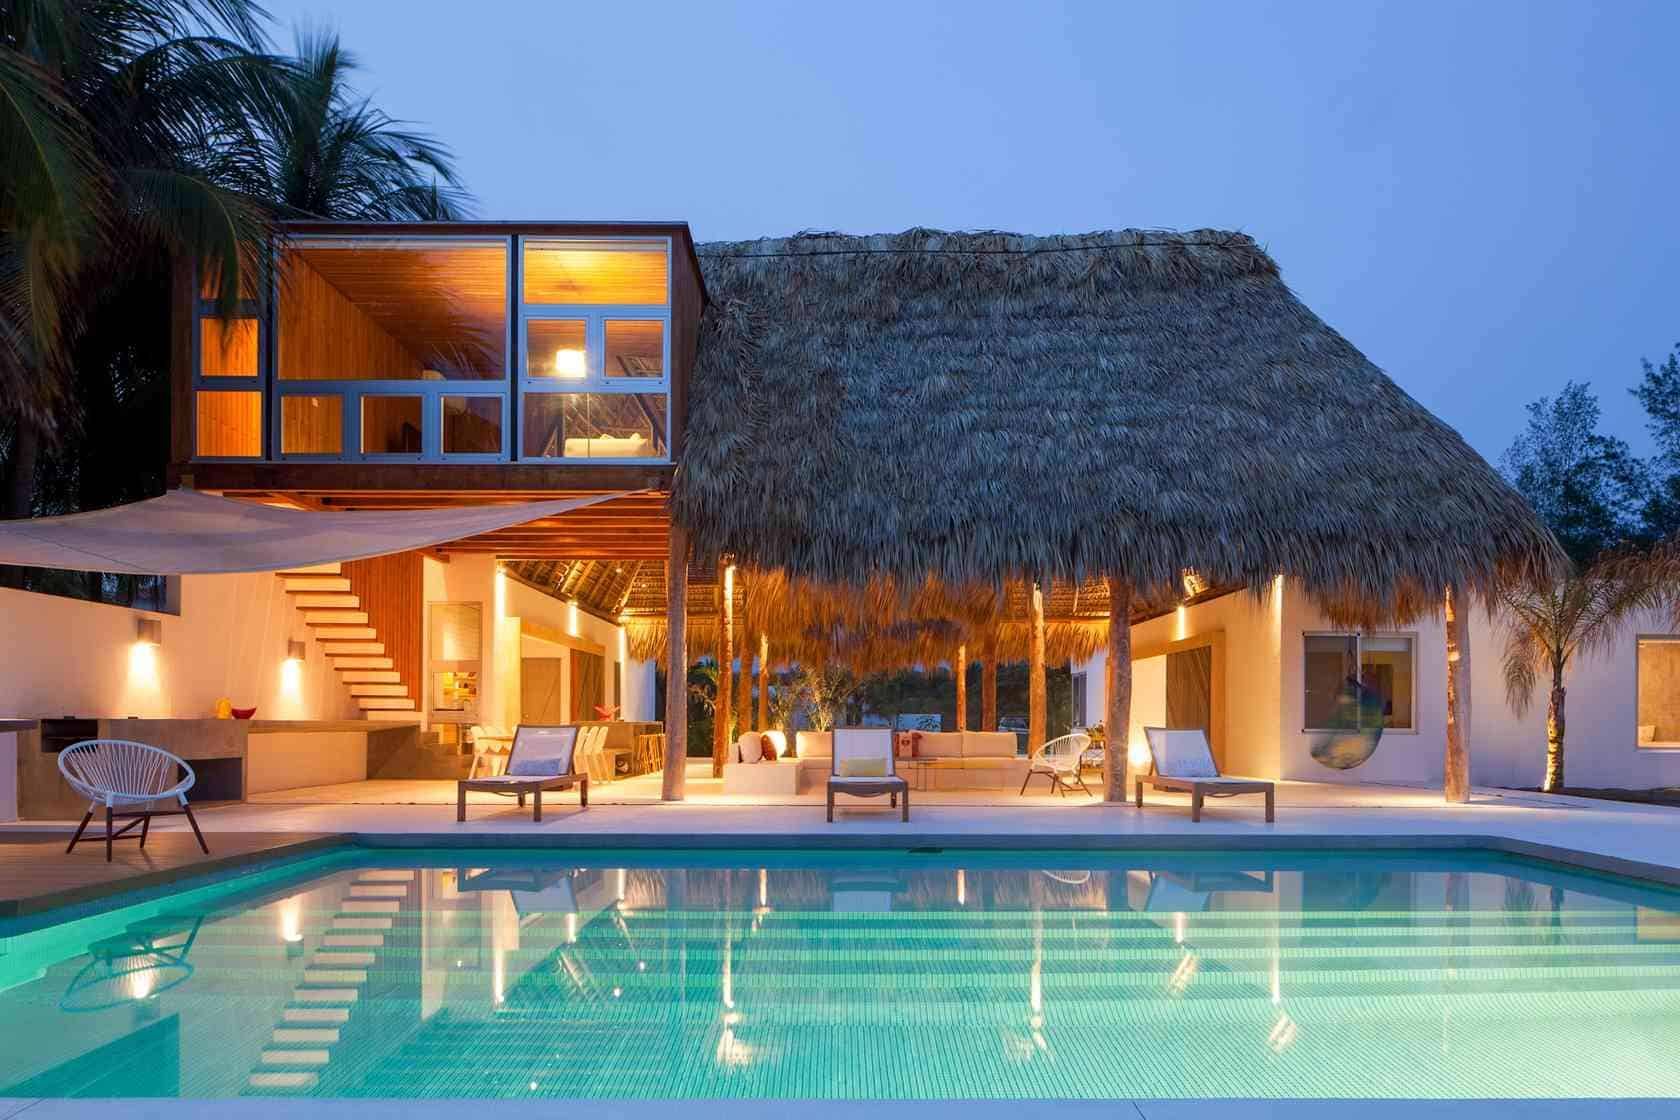 Colorful Tropical Open Home With RoughCut Thatched Roof